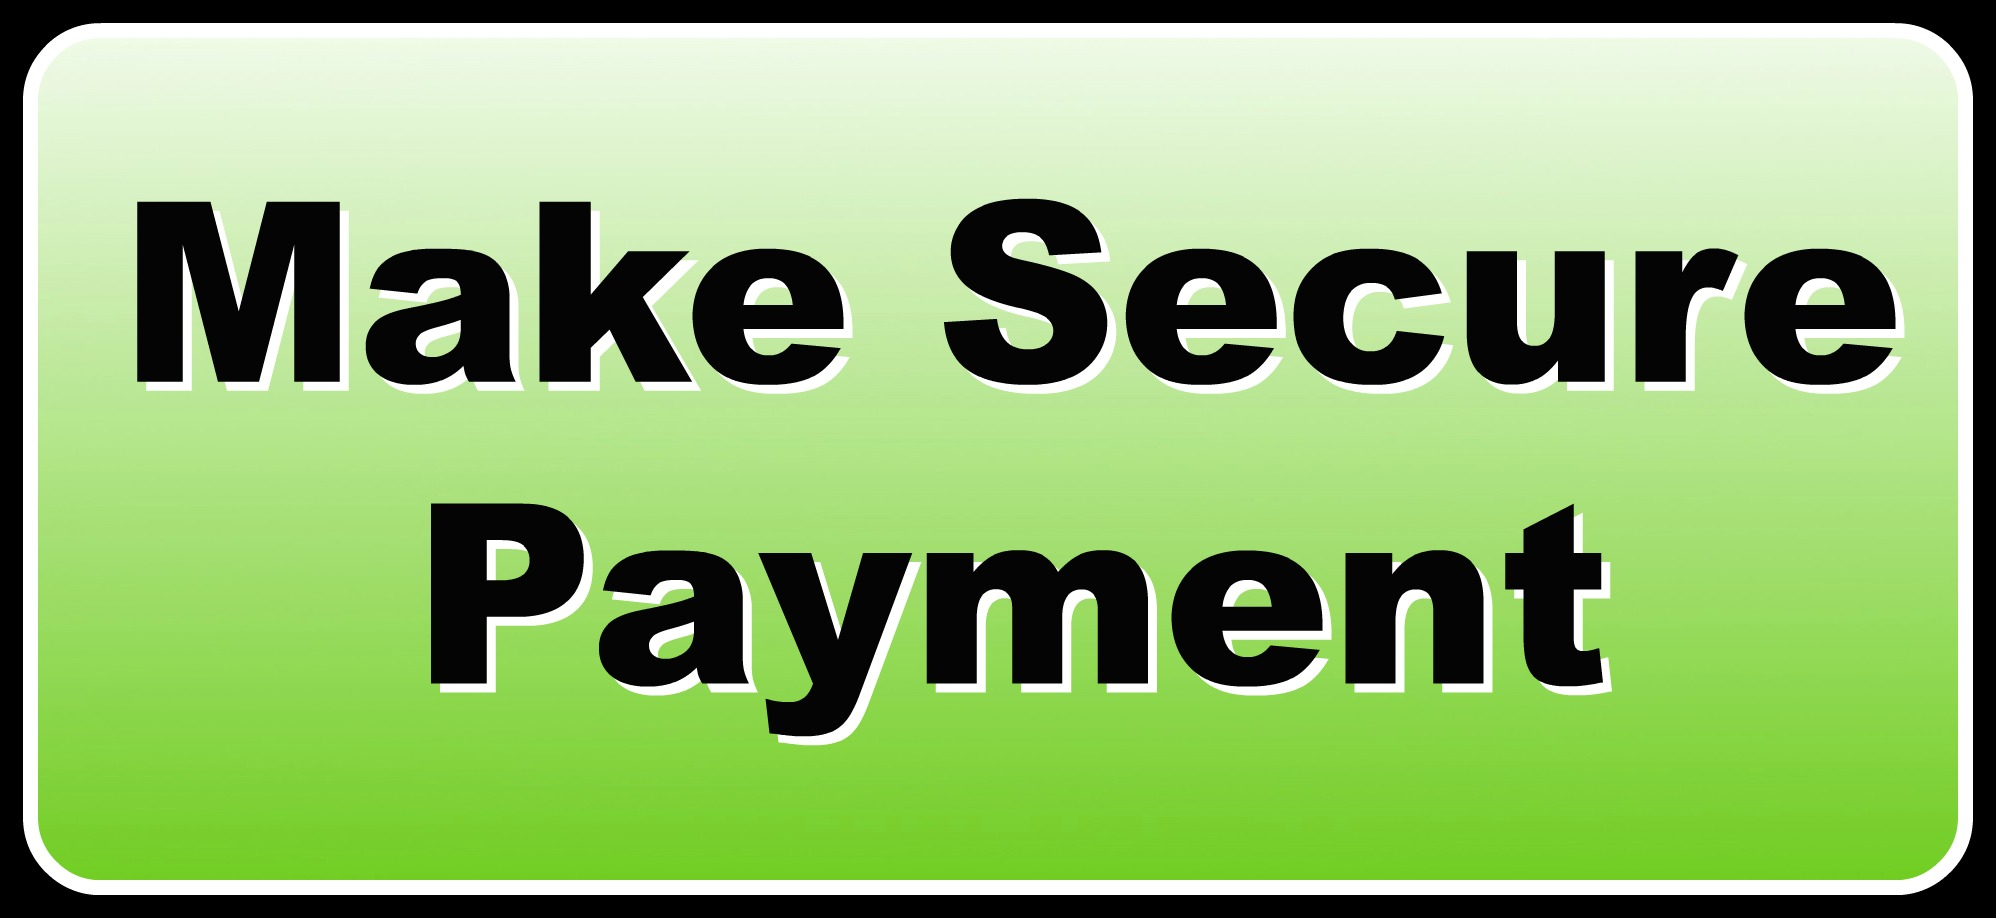 Make Secure Payment